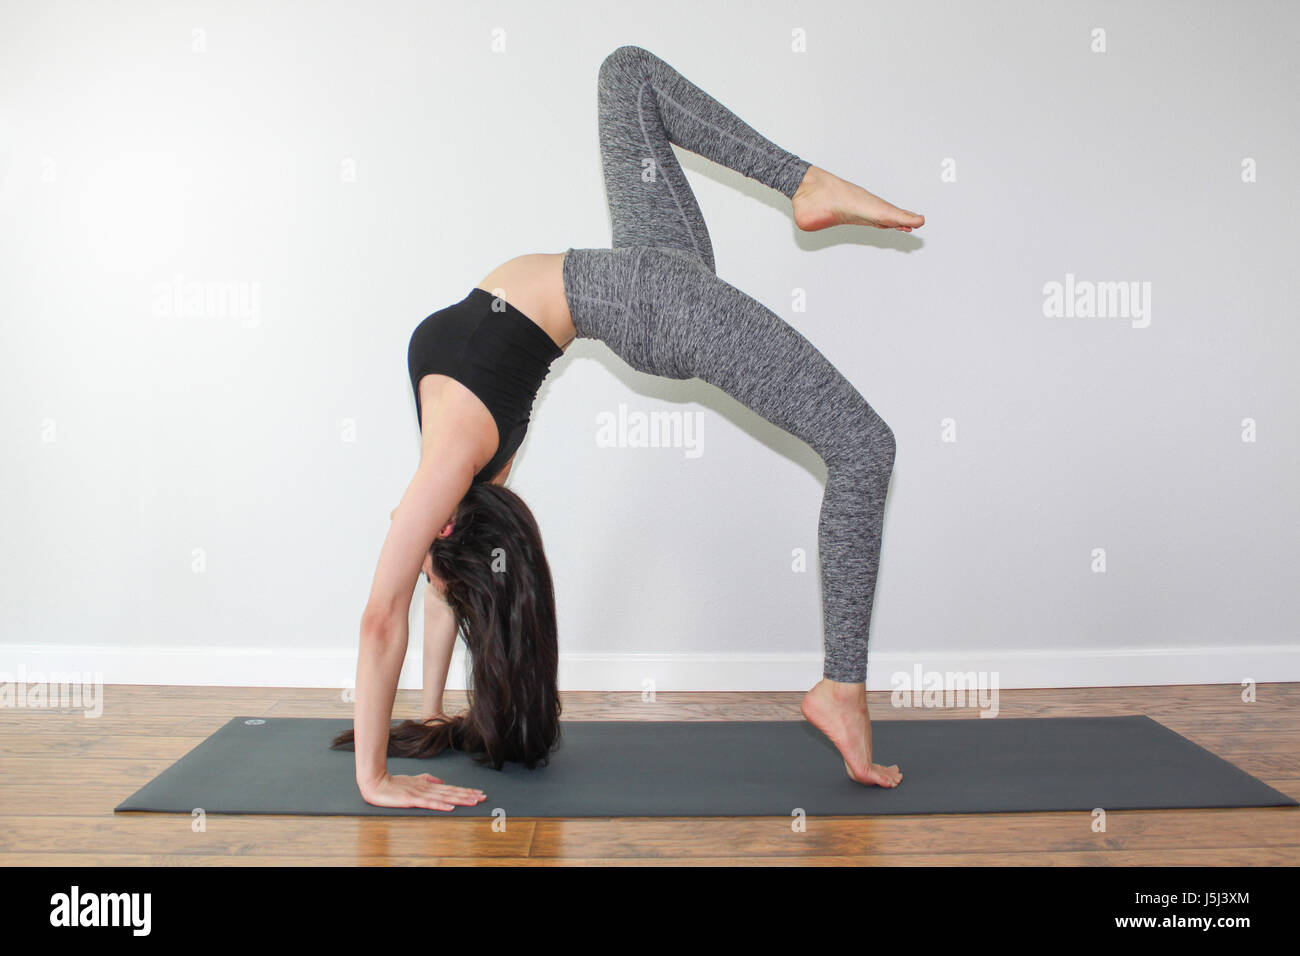 Yoga Wheel Pose High Resolution Stock Photography And Images Alamy